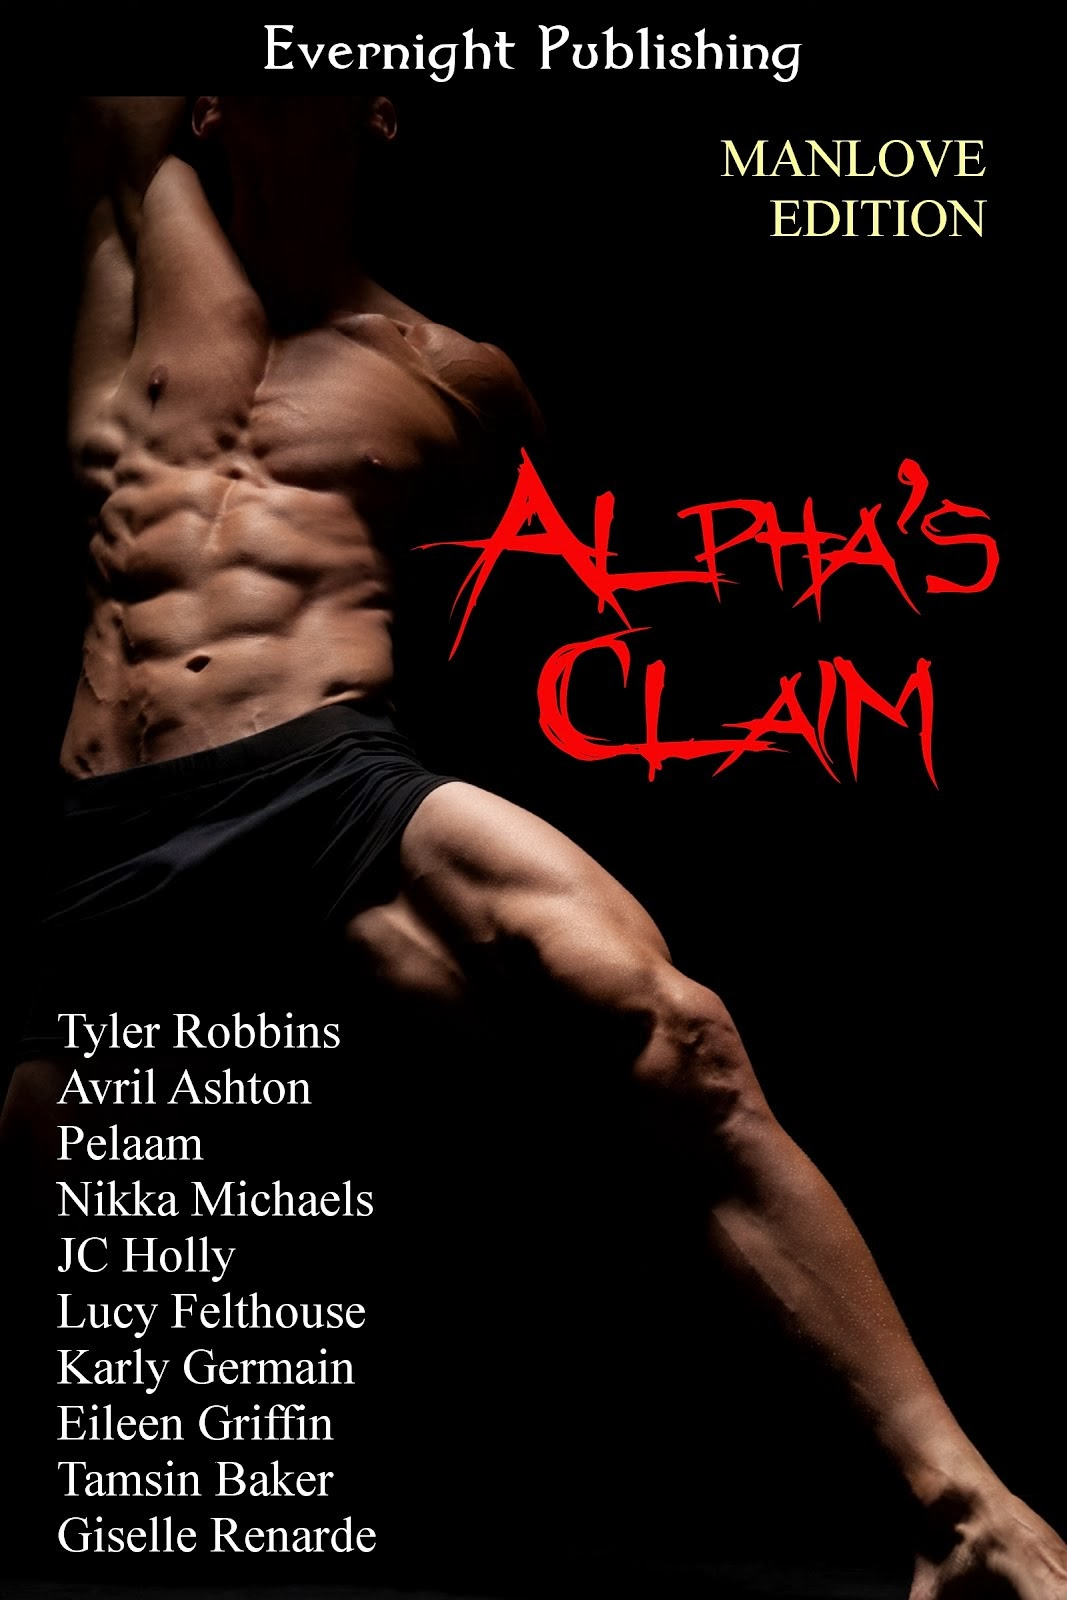 Fantastic M/M shifter anthology